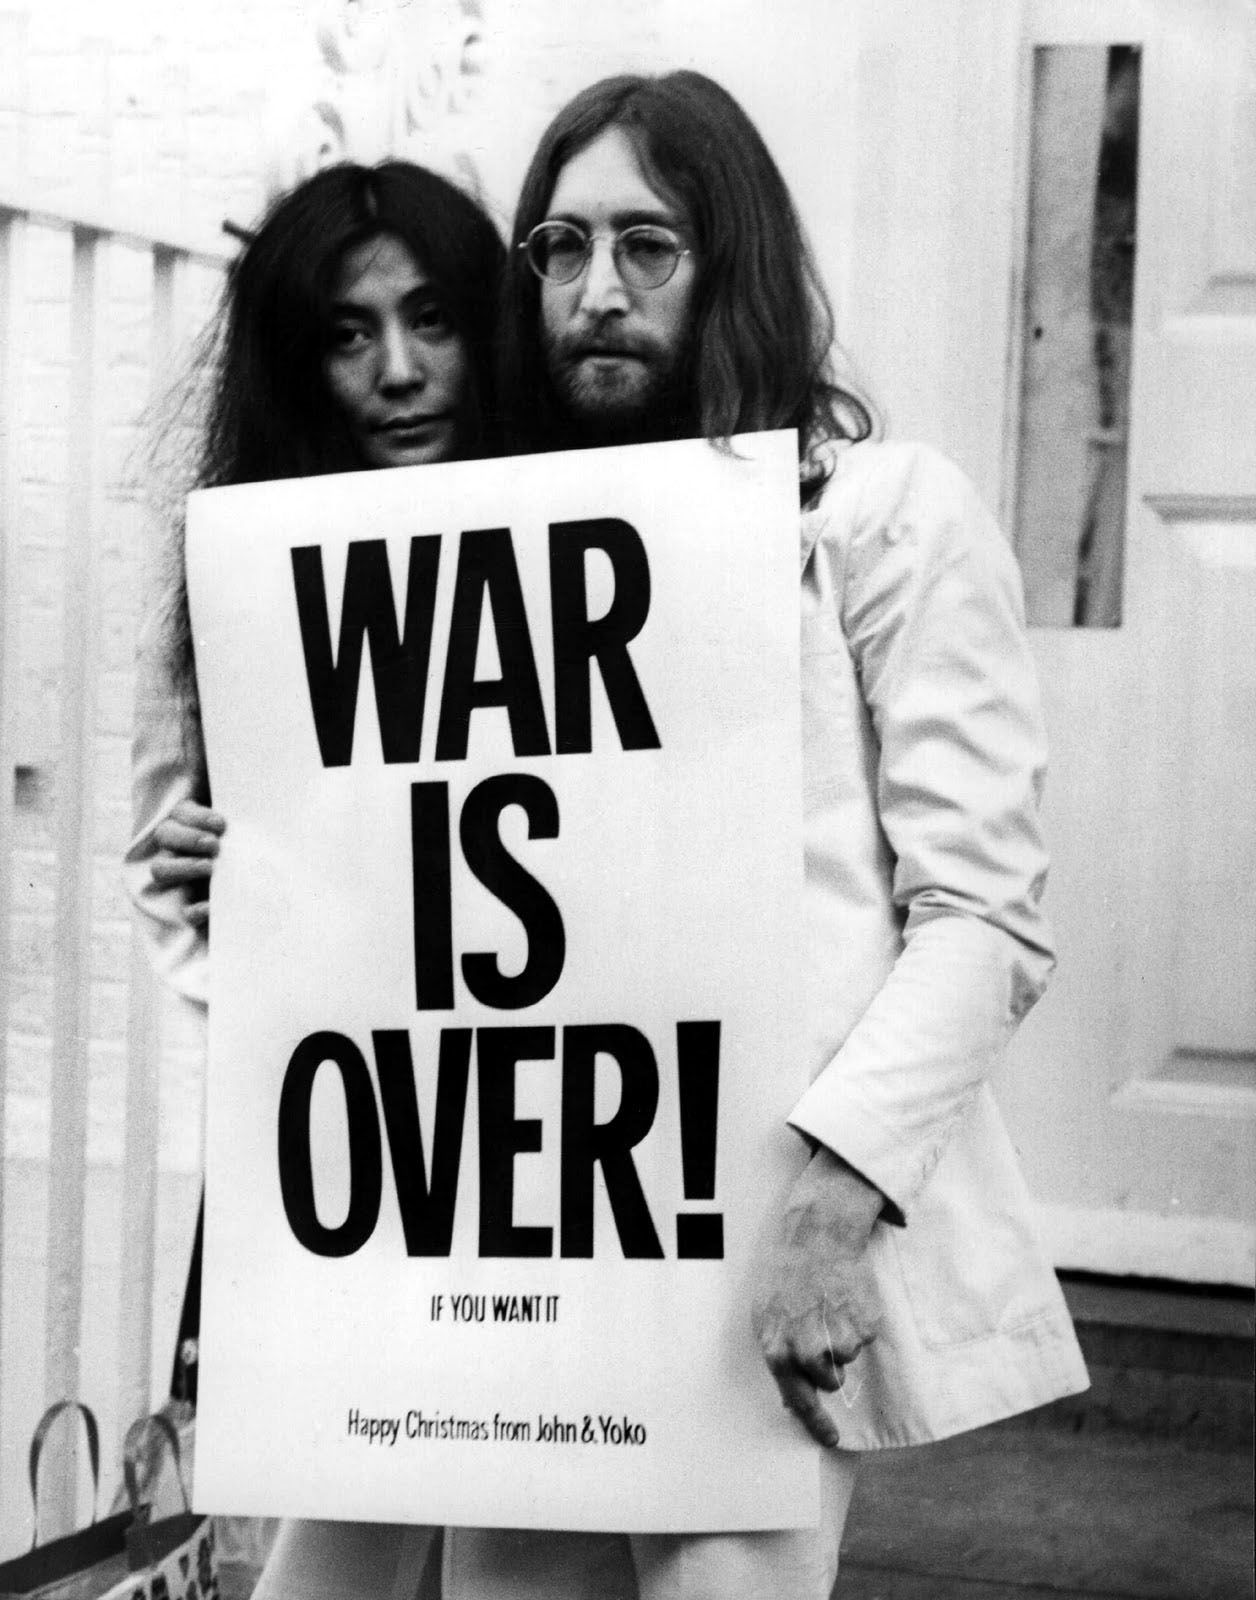 War Is Over John Lennon And Yoko Ono